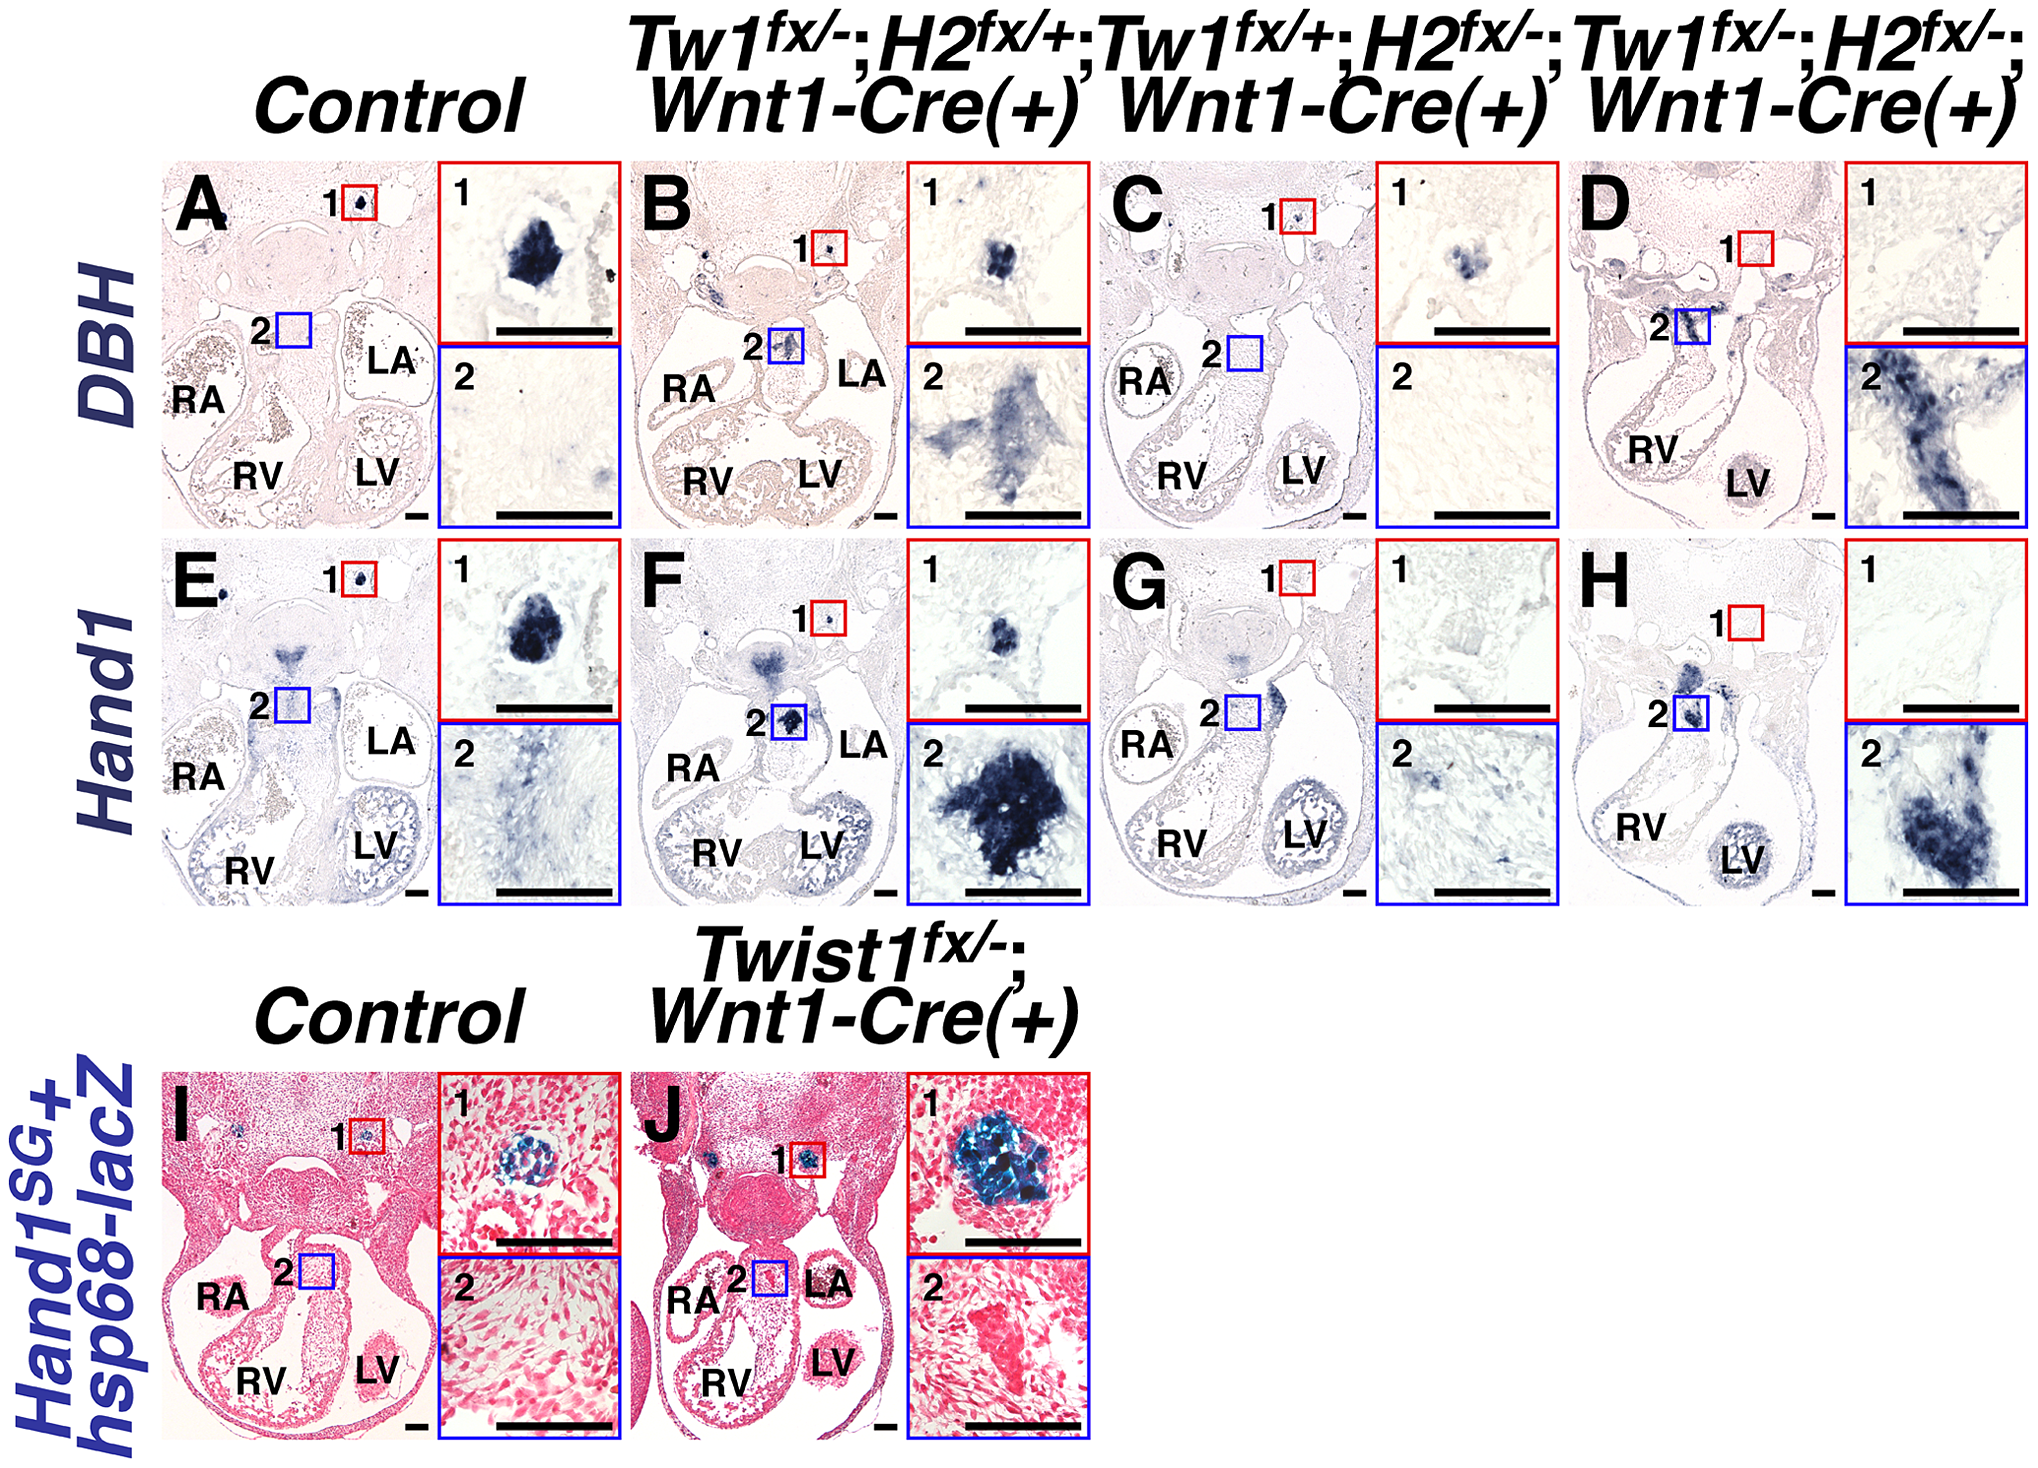 Ectopic sympathetic-like neurons in <i>Twist1</i>;<i>Wnt1-Cre</i> CKO APCs are not <i>bona fide</i> sympathetic neurons.